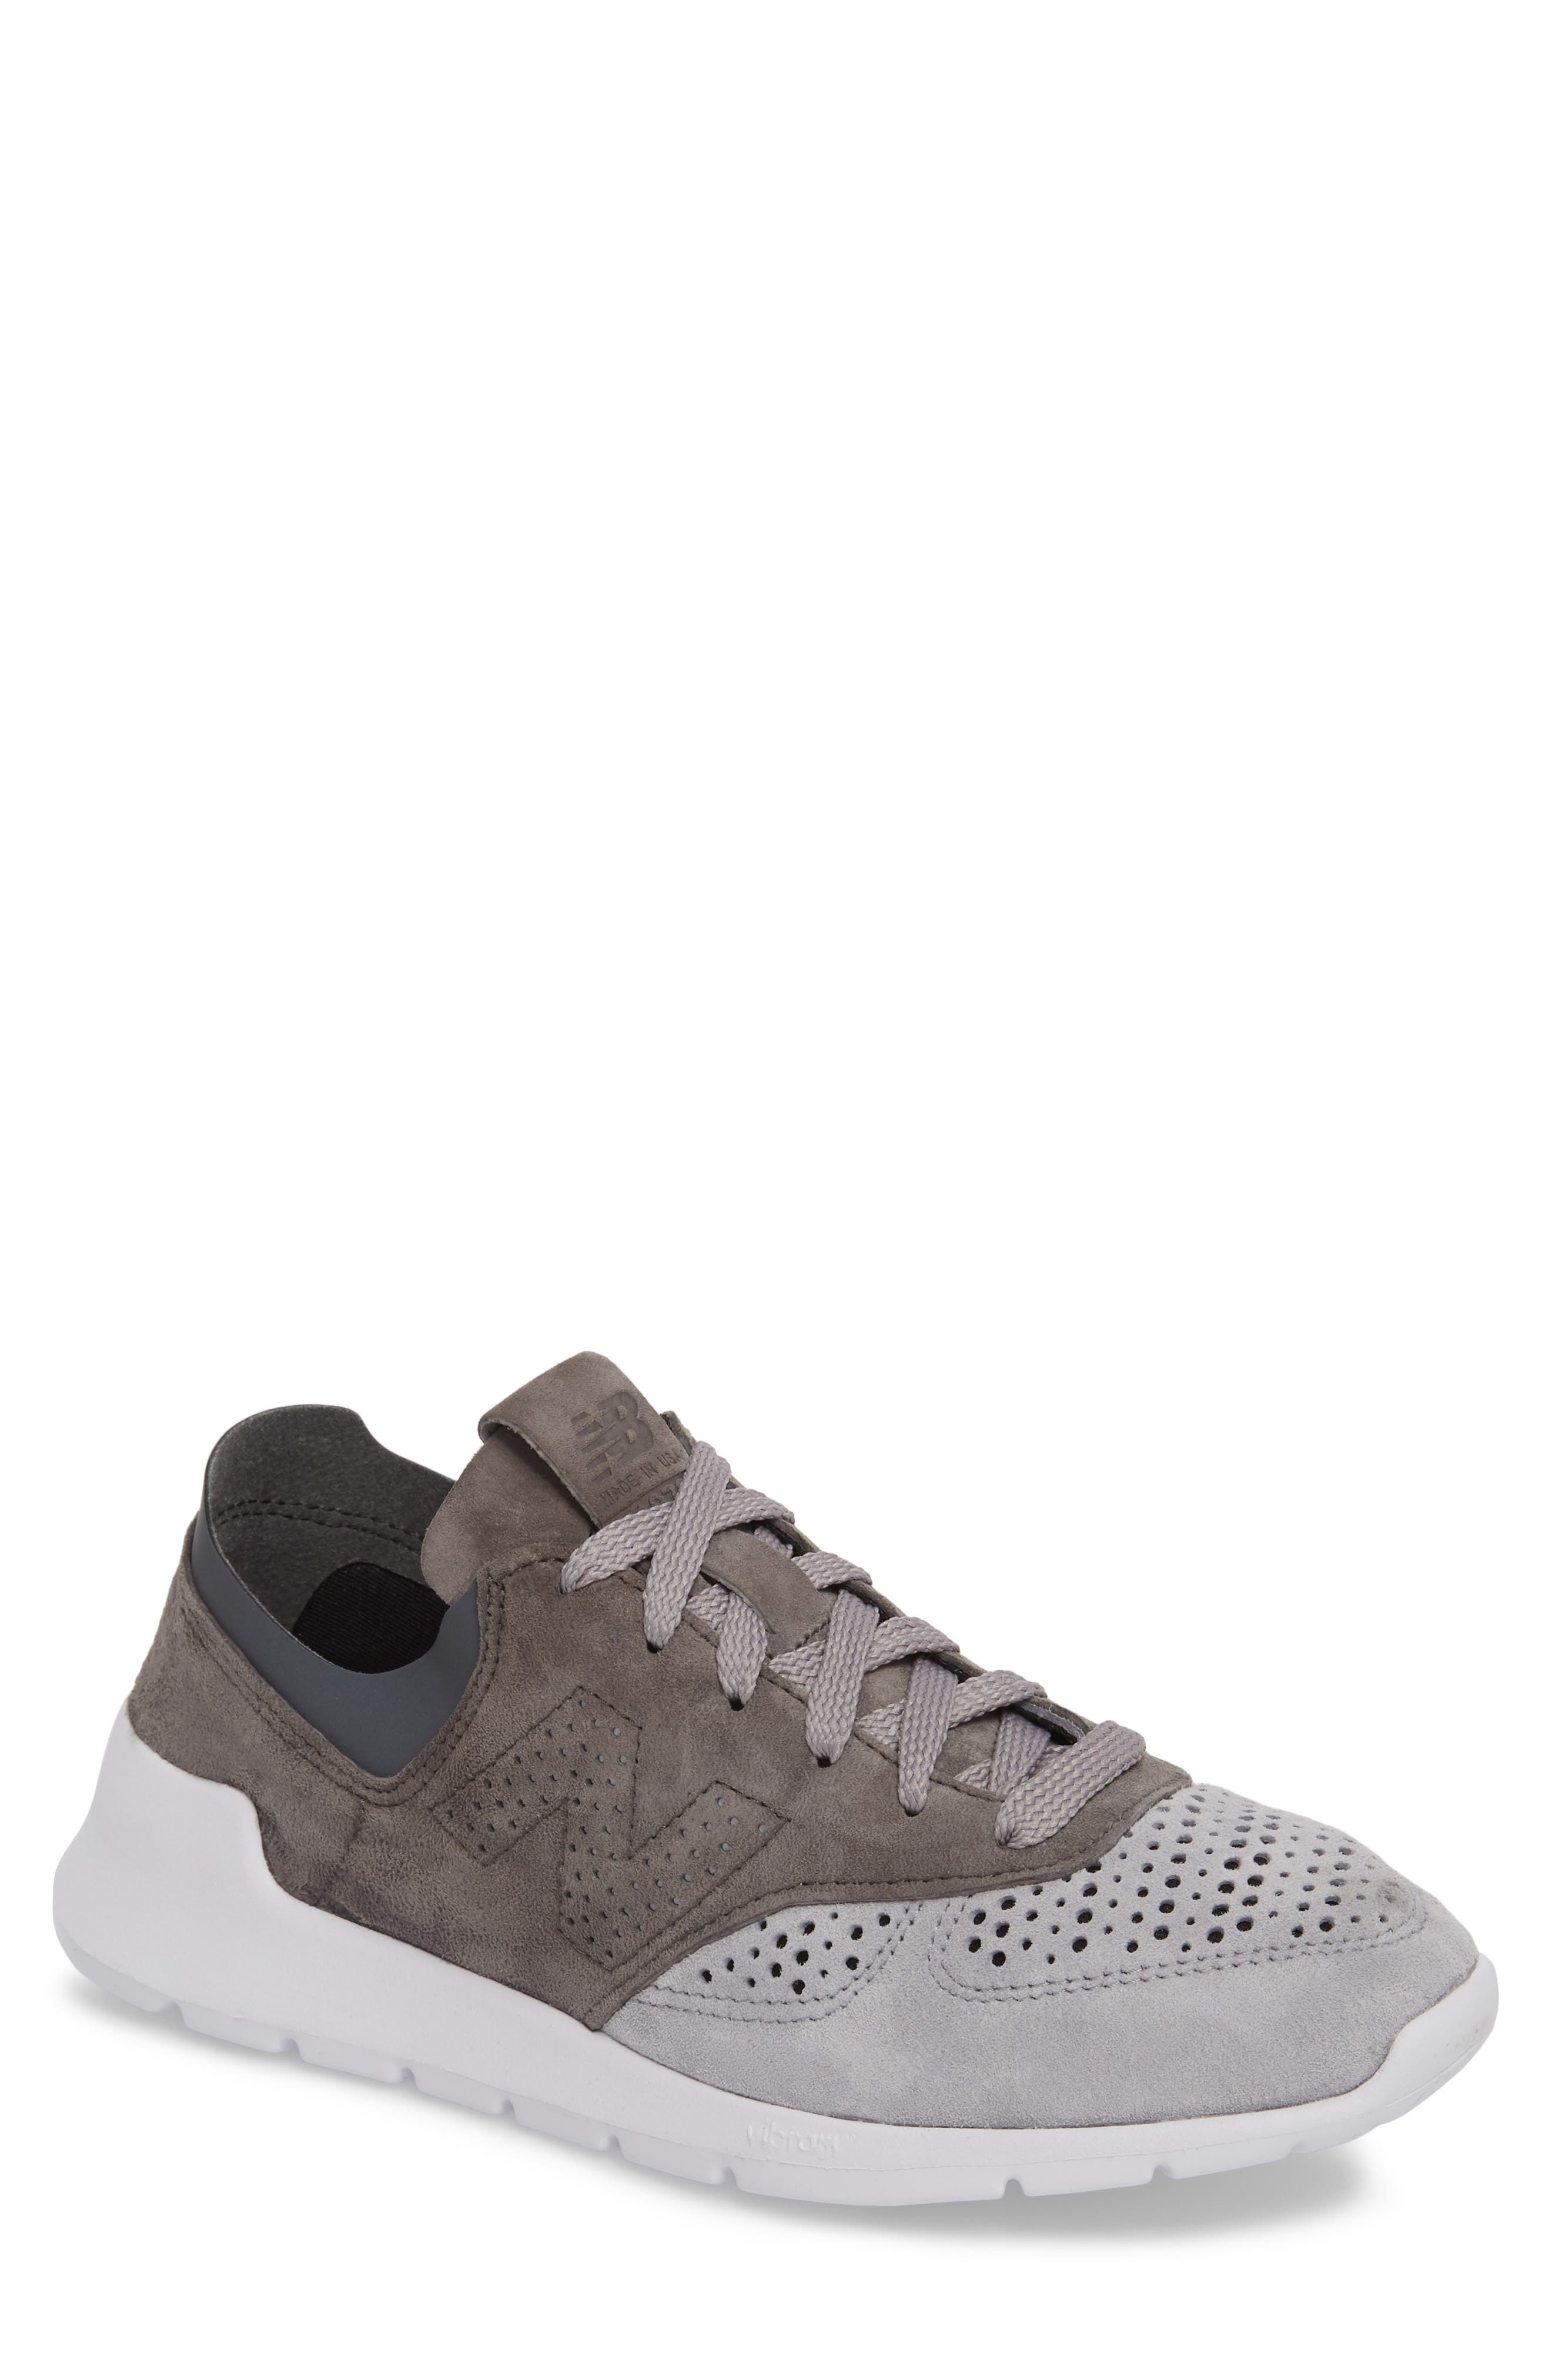 1978 Perforated Sneaker,                         Main,                         color, Grey